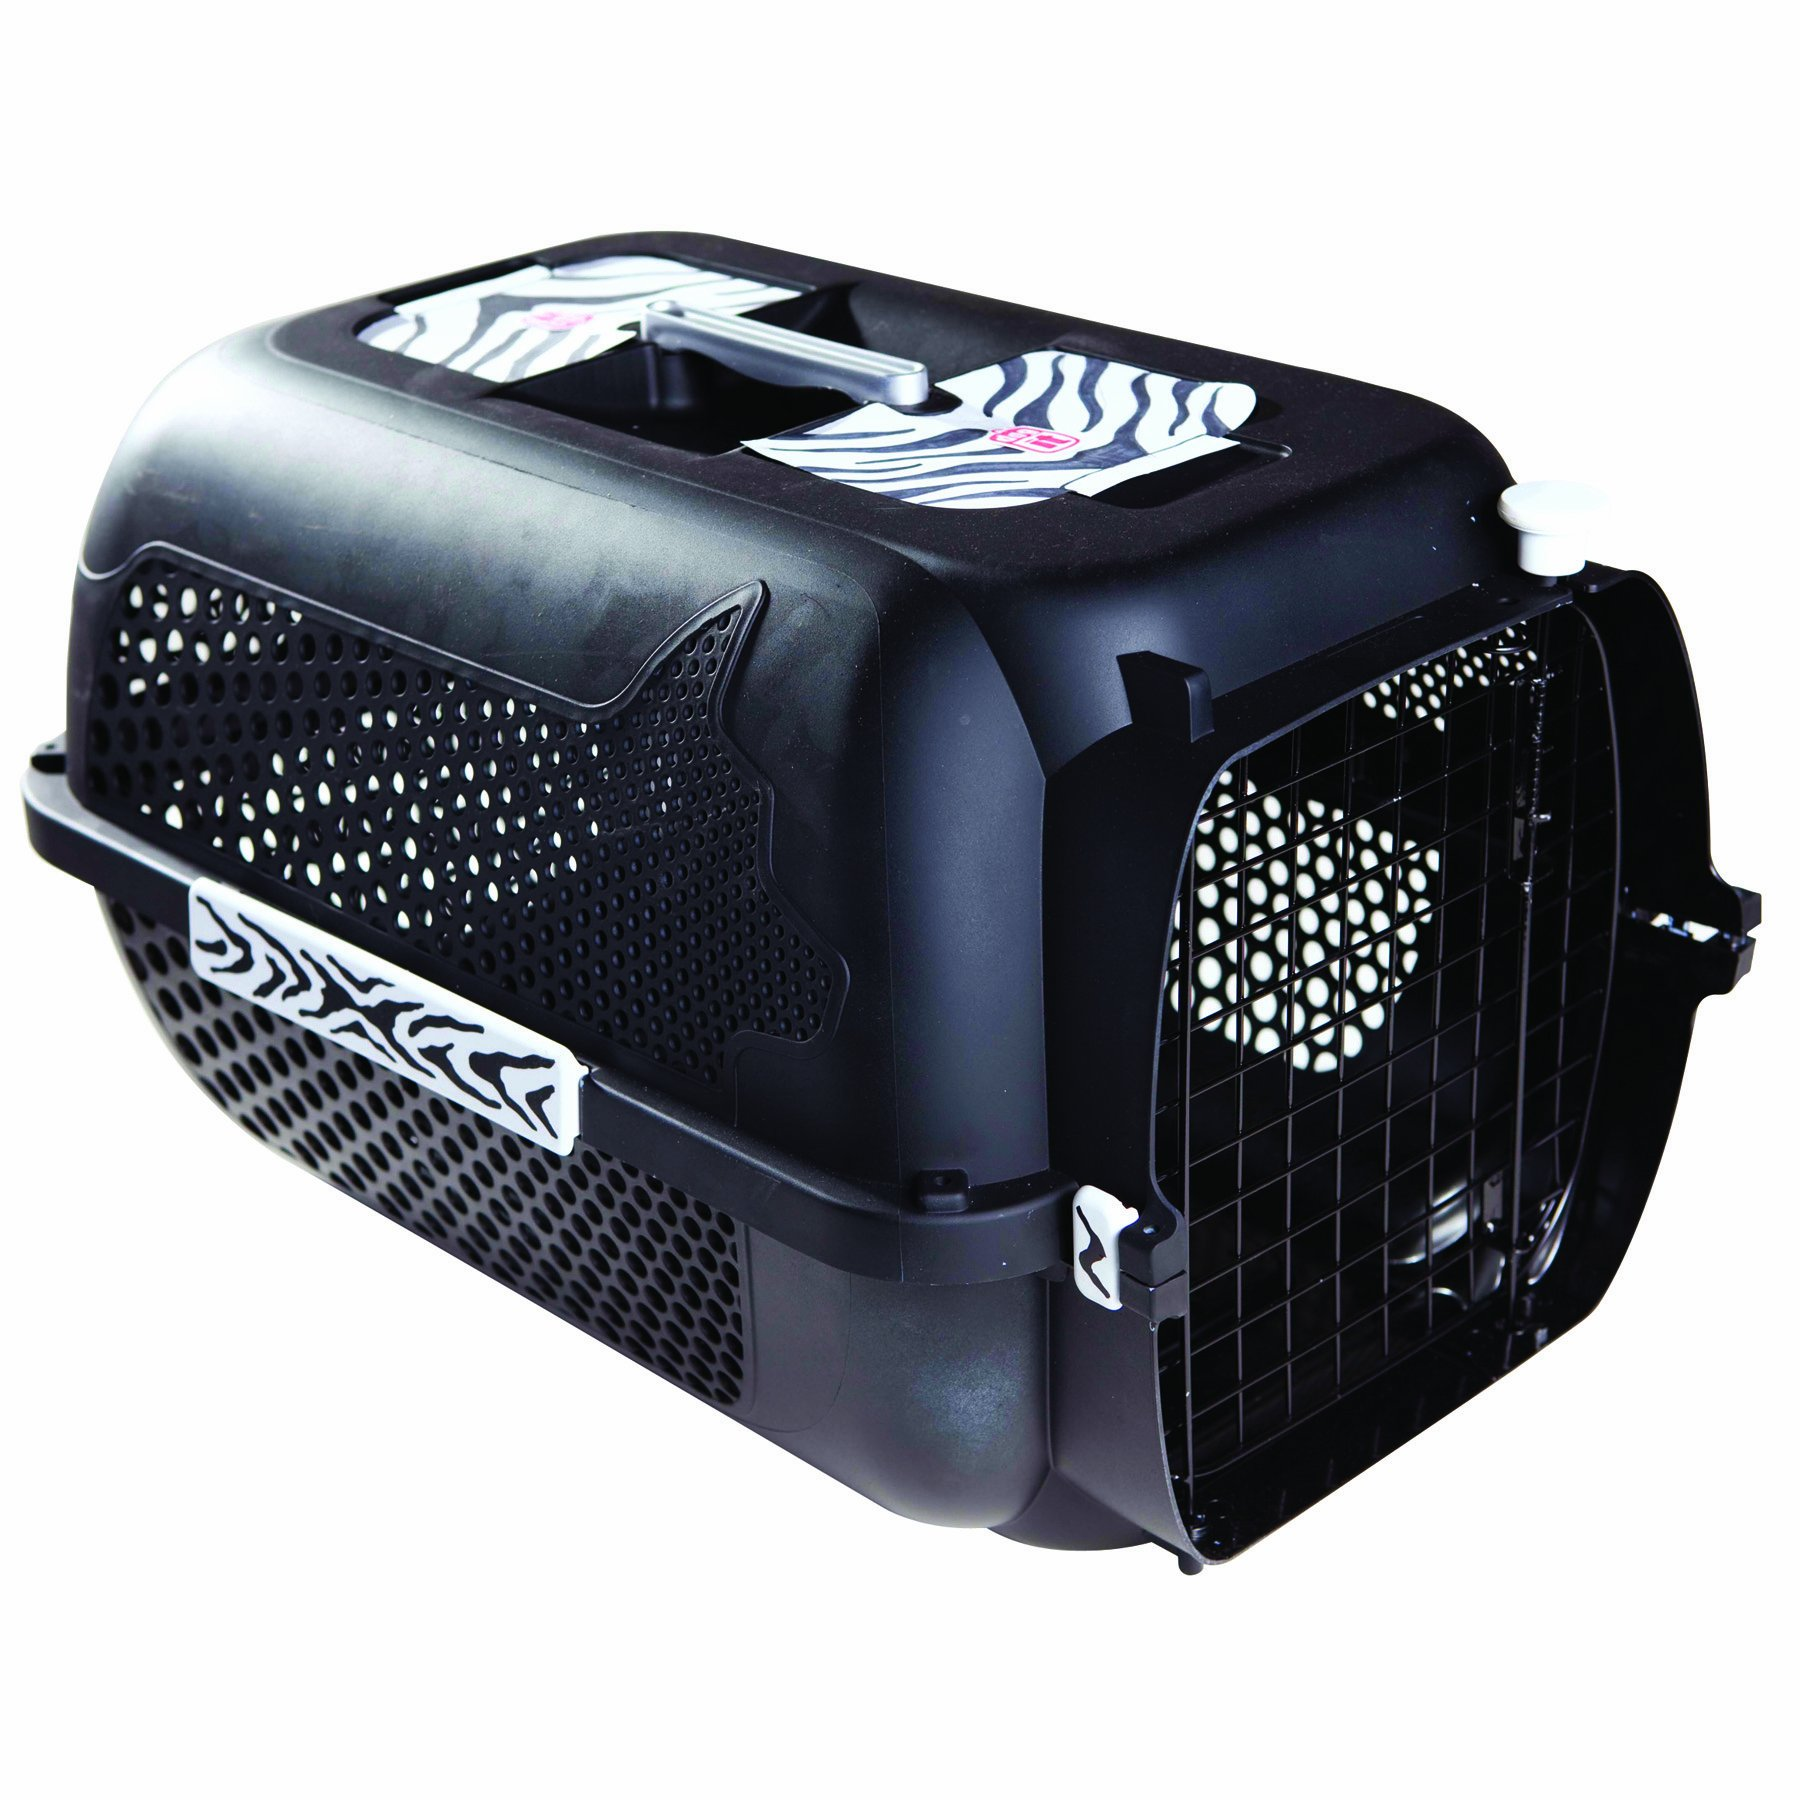 Dogit Style White Tiger Voyager, Black, Large by Dogit